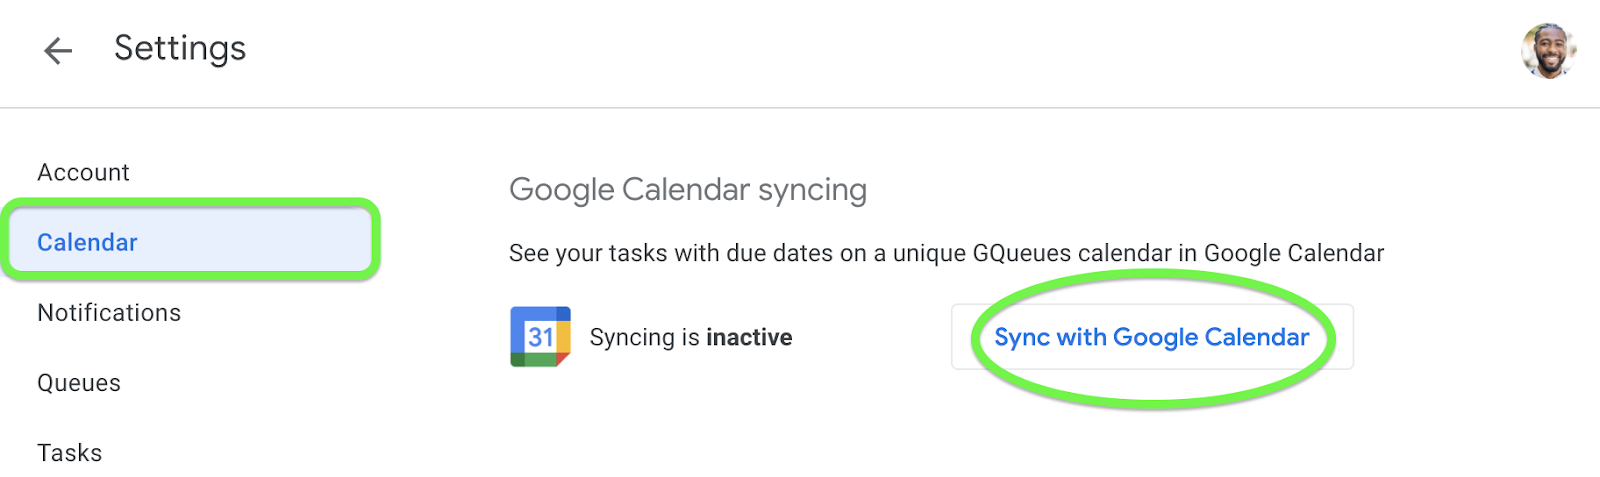 Activate Google Calendar syncing from Settings.